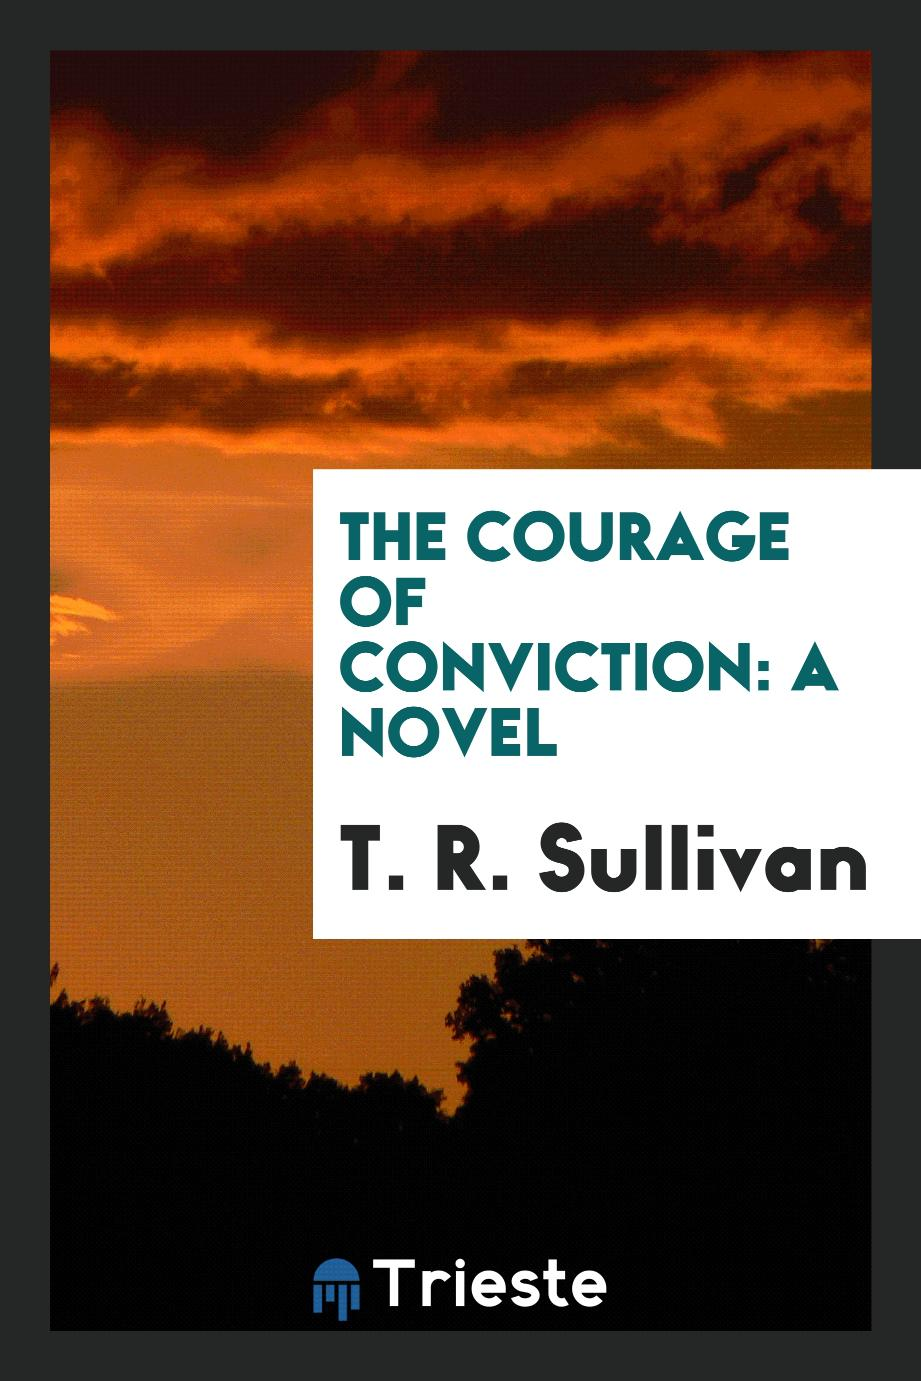 The Courage of Conviction: A Novel